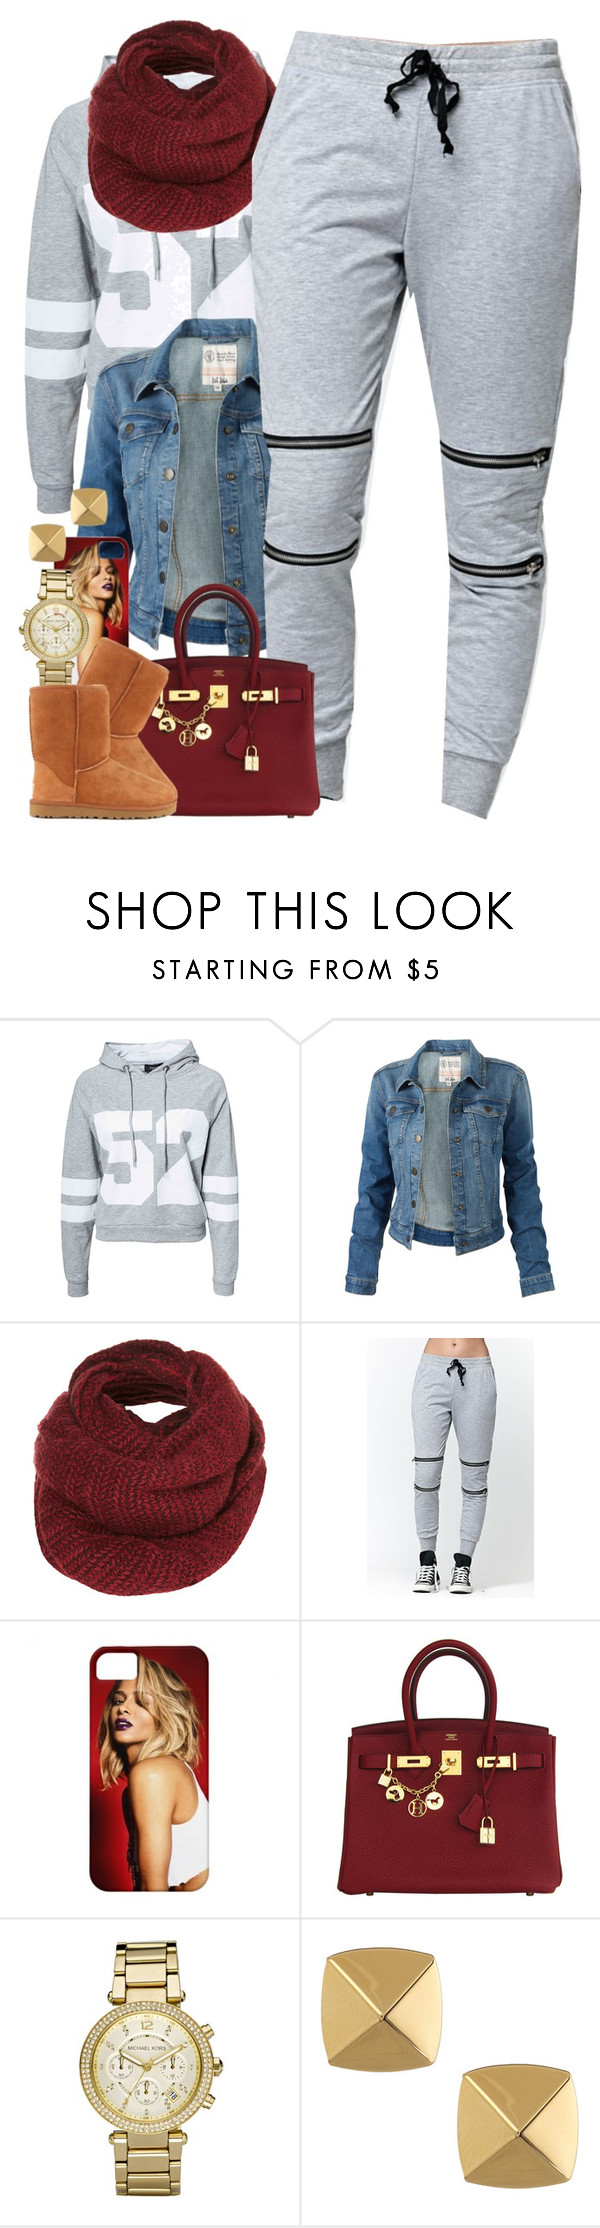 """""""Untitled #1443"""" by power-beauty ❤ liked on Polyvore featuring Sisters Point, Fat Face, Topshop, LA: Hearts, Hermès, Michael Kors, Vince Camuto and UGG Australia"""